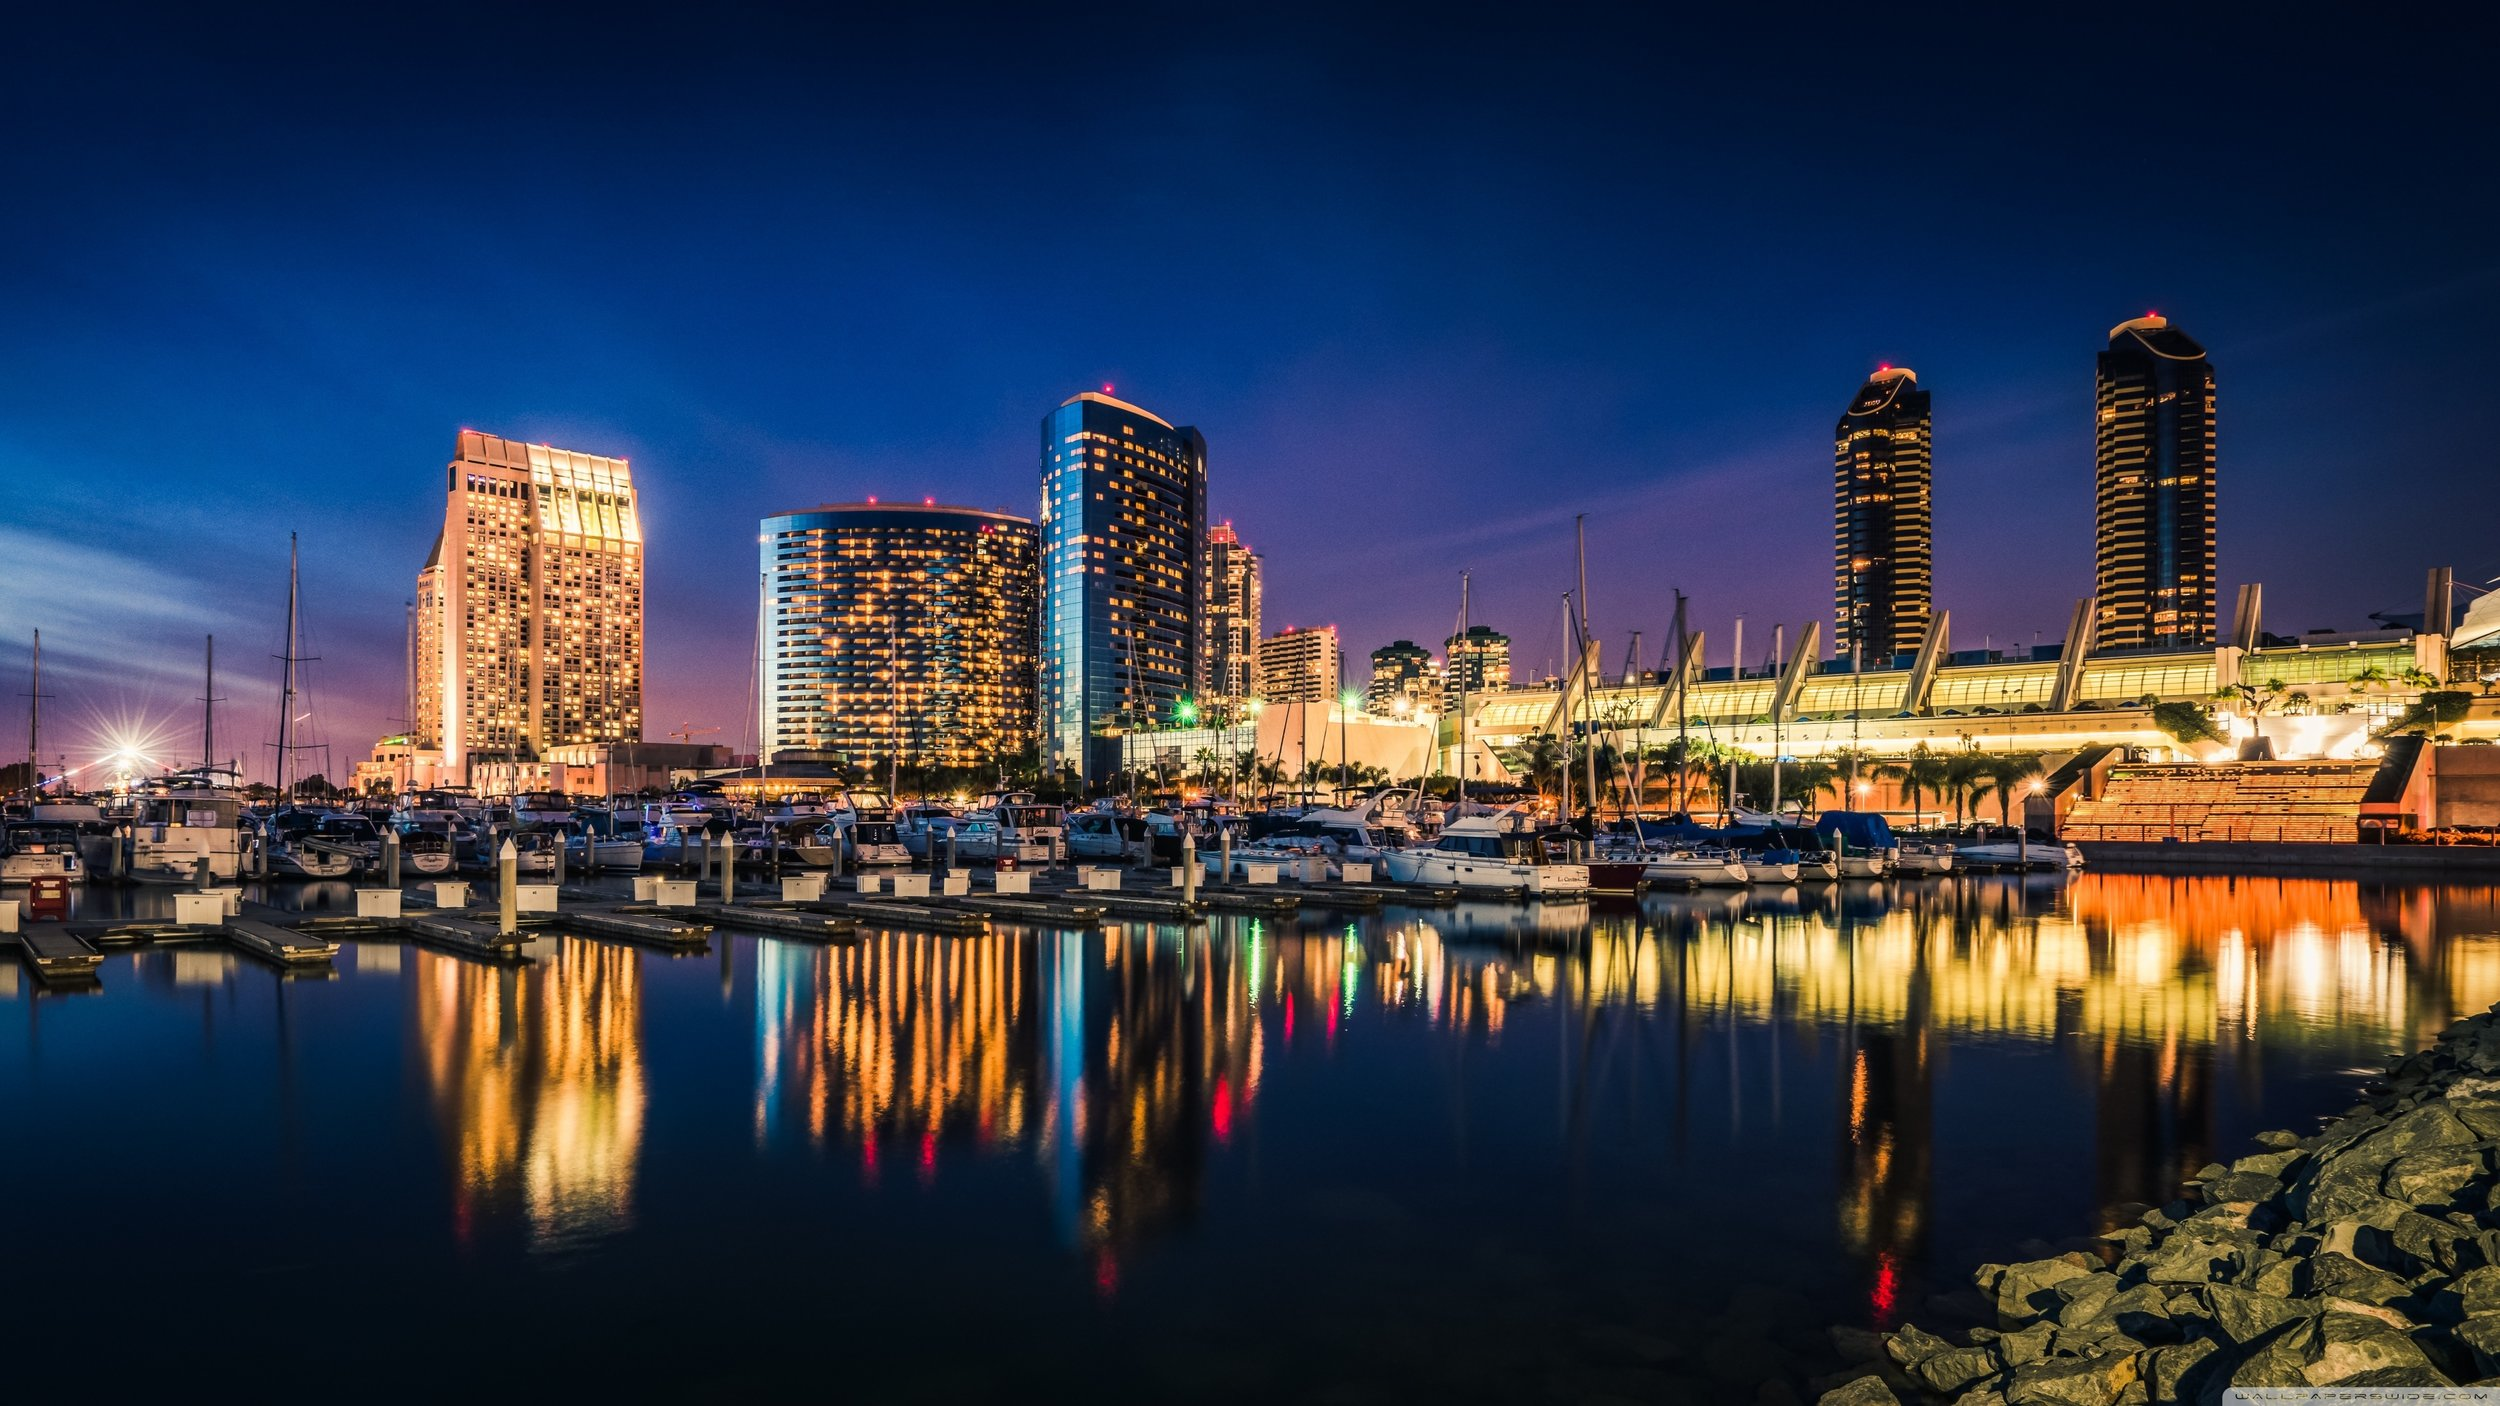 calm_san_diego_night-wallpaper-3554x1999.jpg